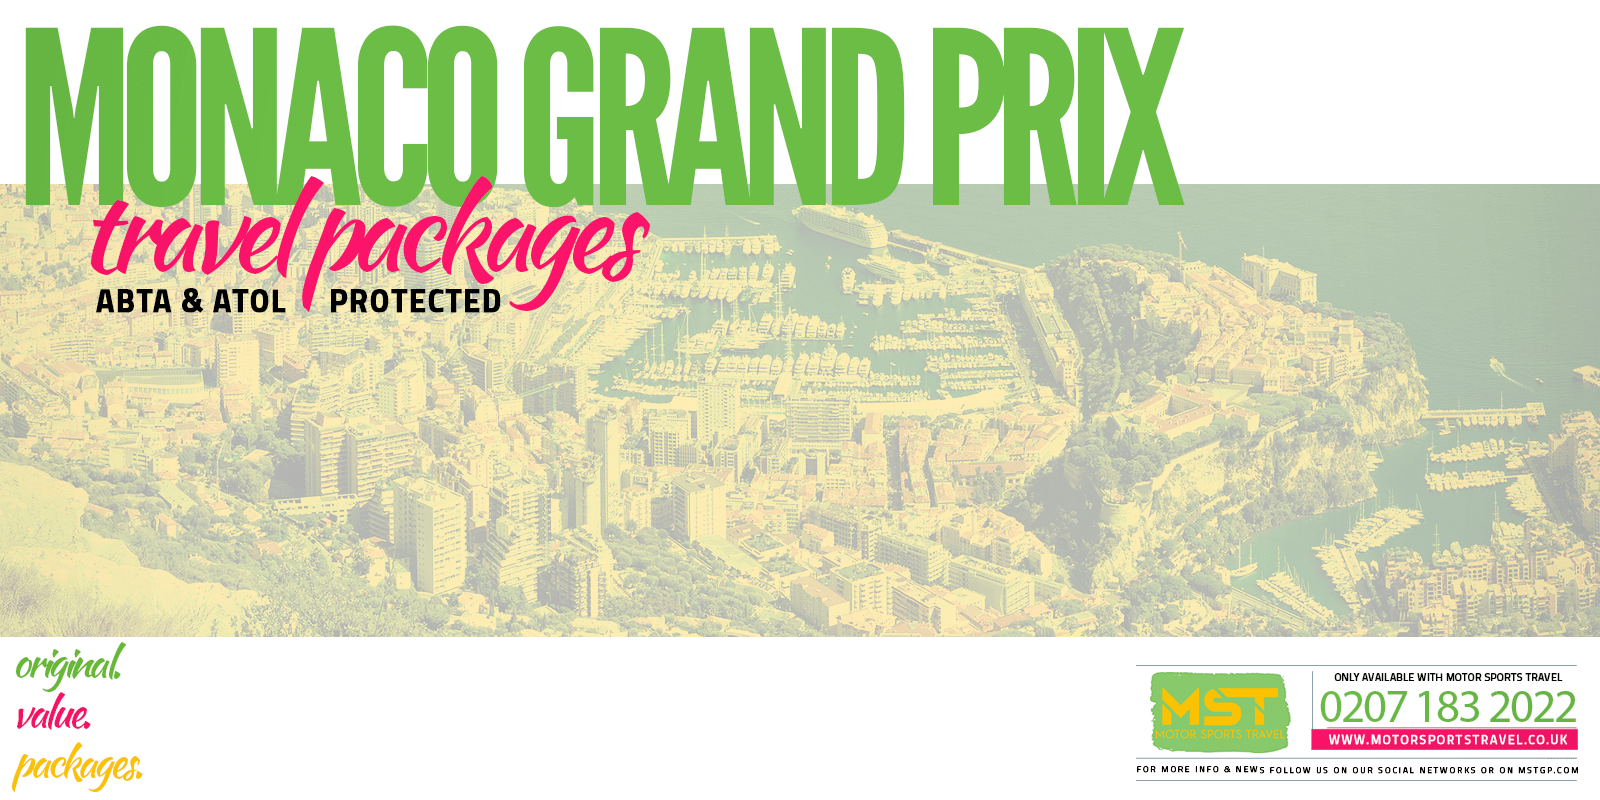 2020 Formula 1 Monaco Grand Prix travel packages | Motor Sports Travel